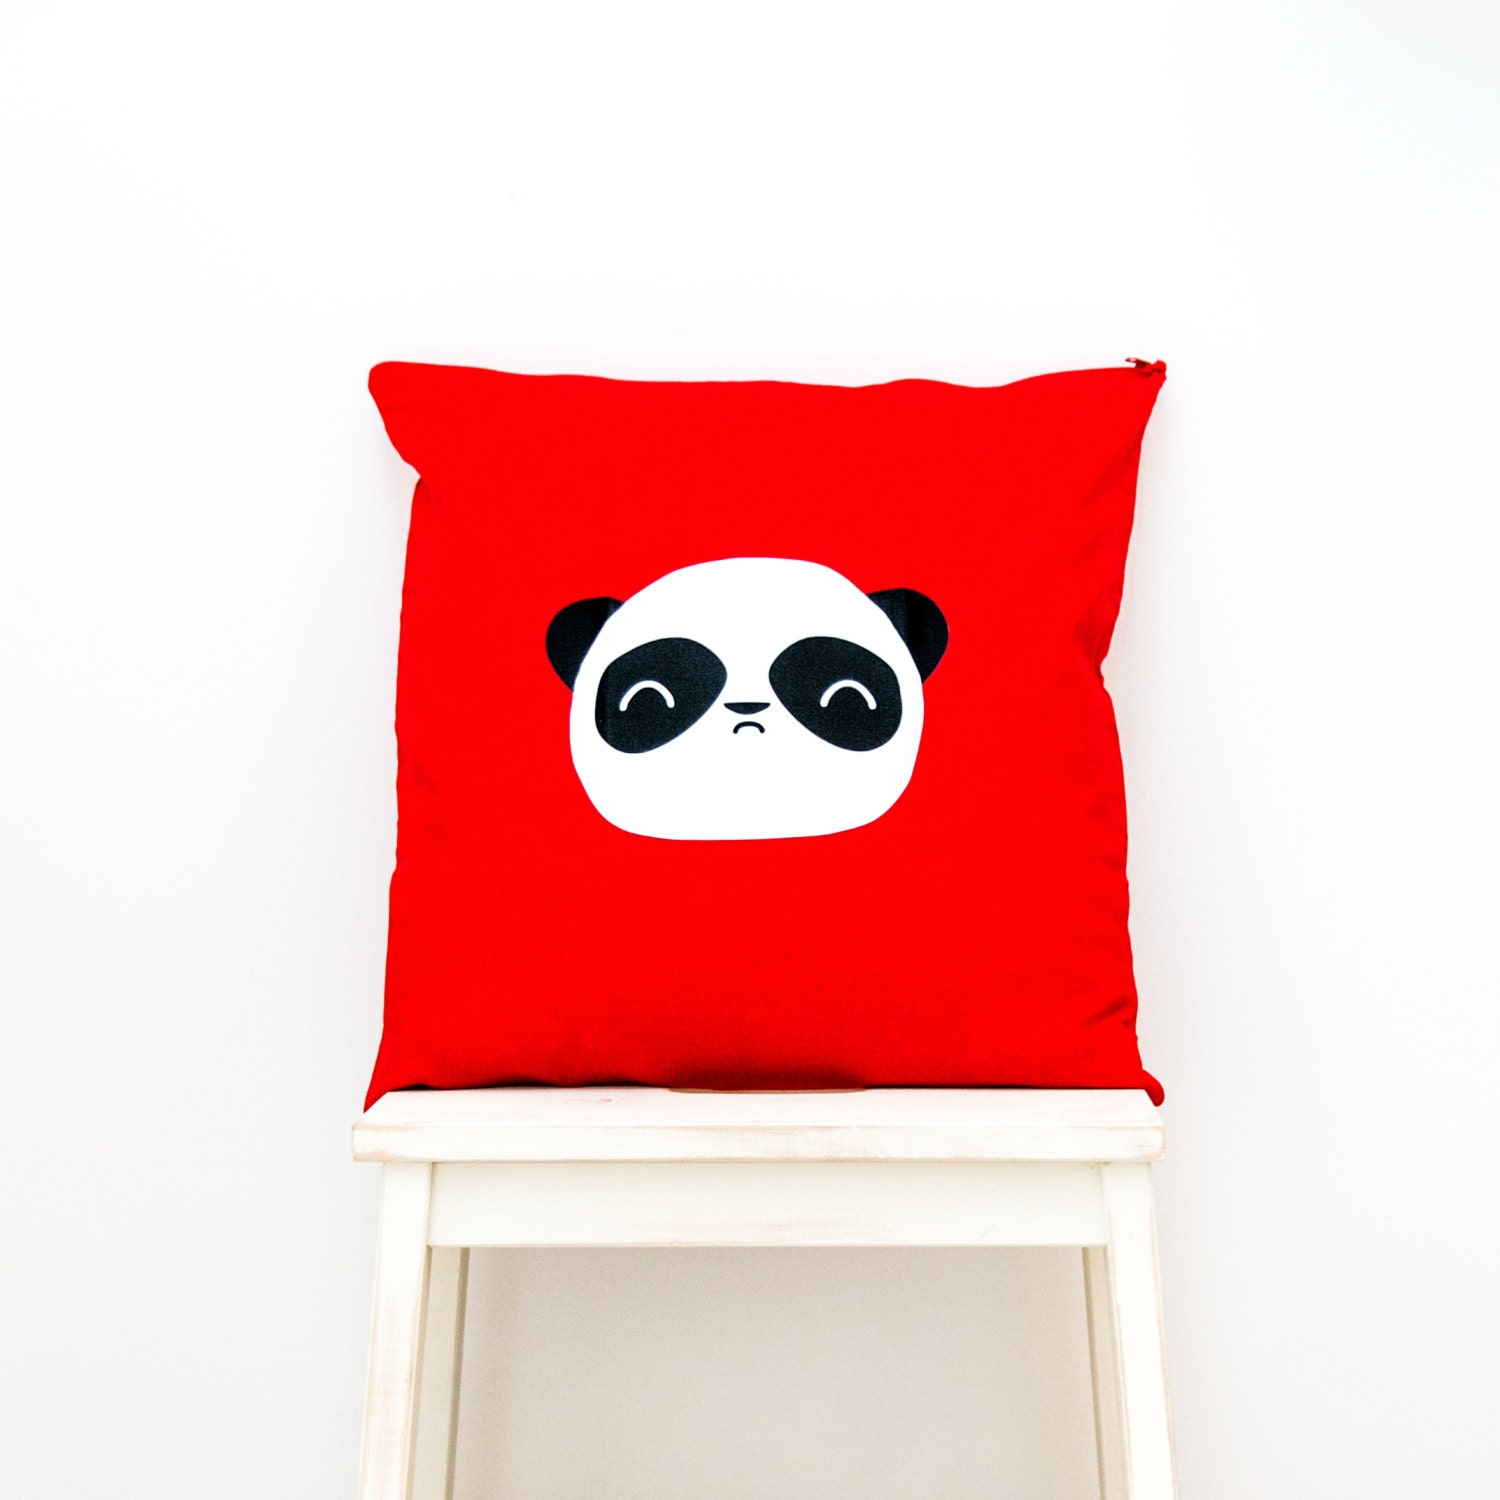 Wise Panda  Kawaii panda face Cushion home decor for childrens bedroom nursery or cosy accessories for the home. Red w monochrome hues